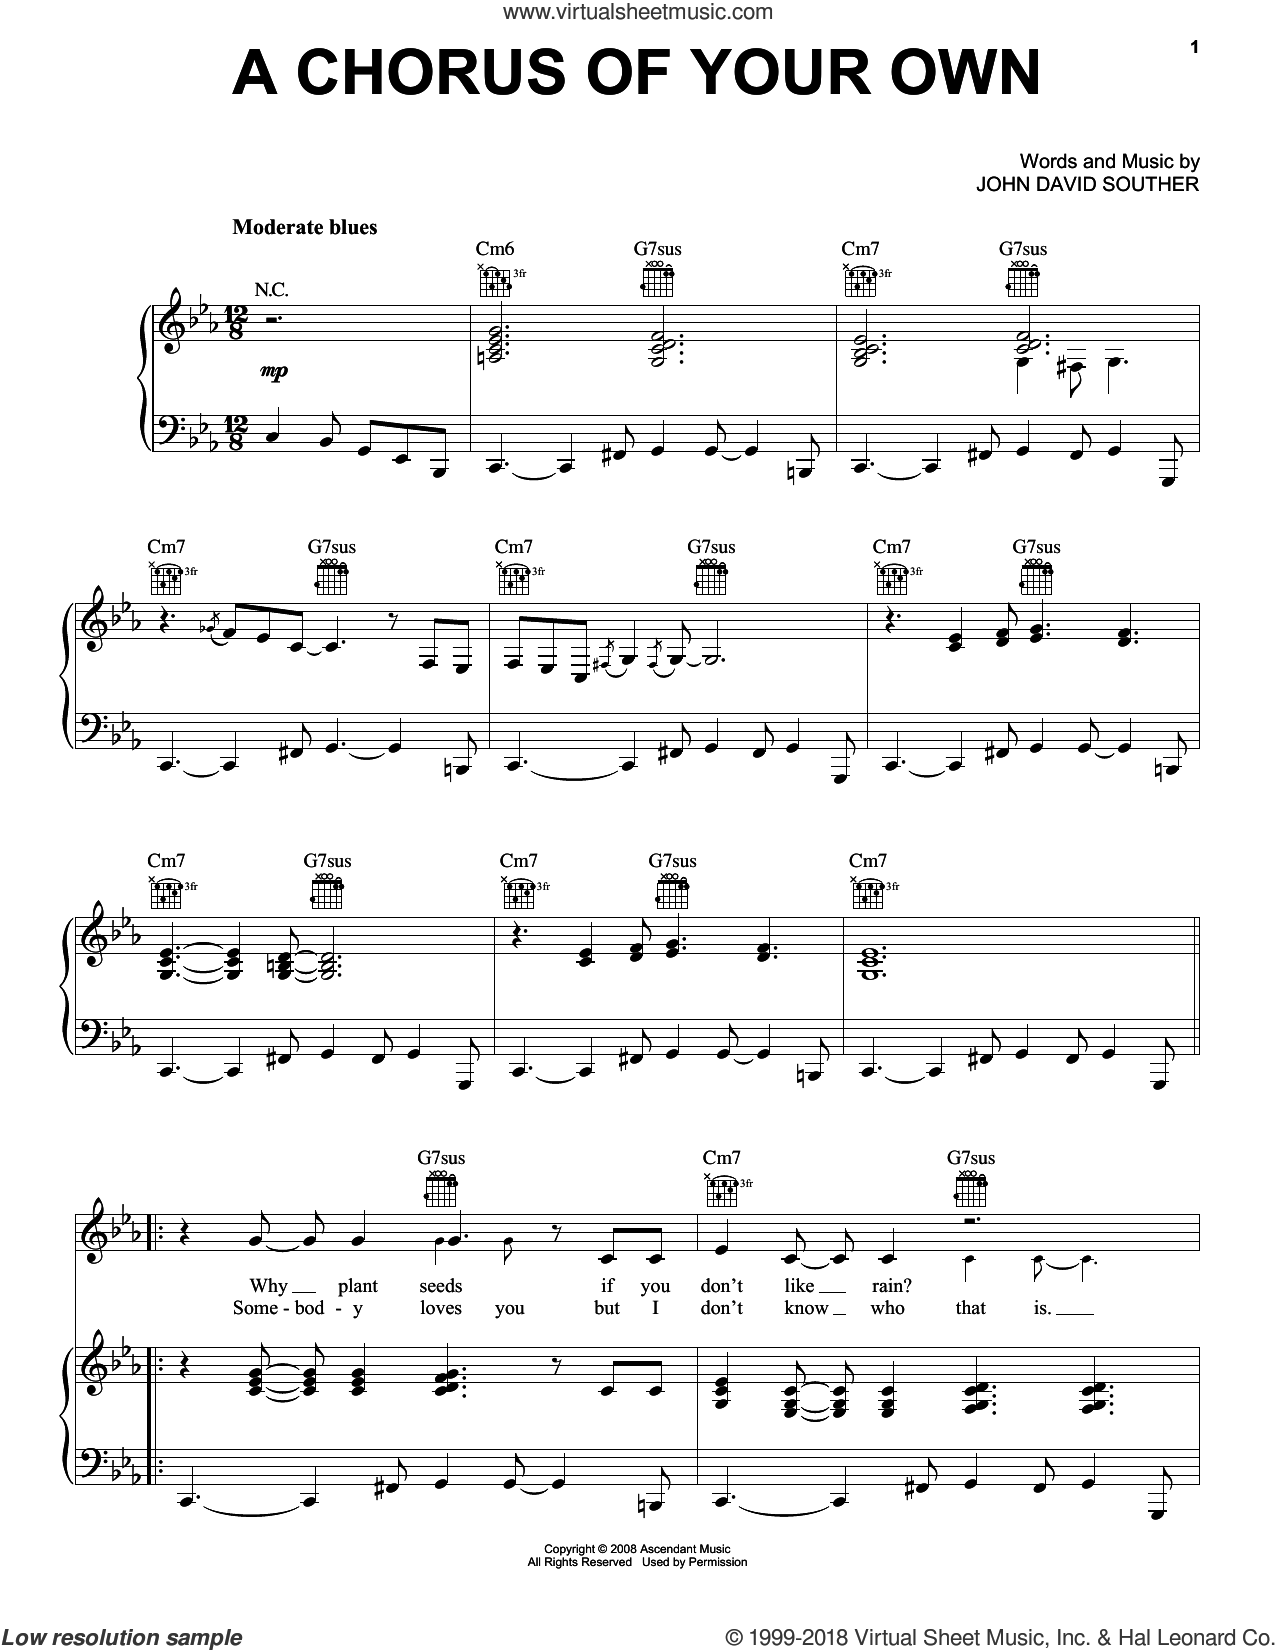 A Chorus Of Your Own sheet music for voice, piano or guitar by John David Souther. Score Image Preview.